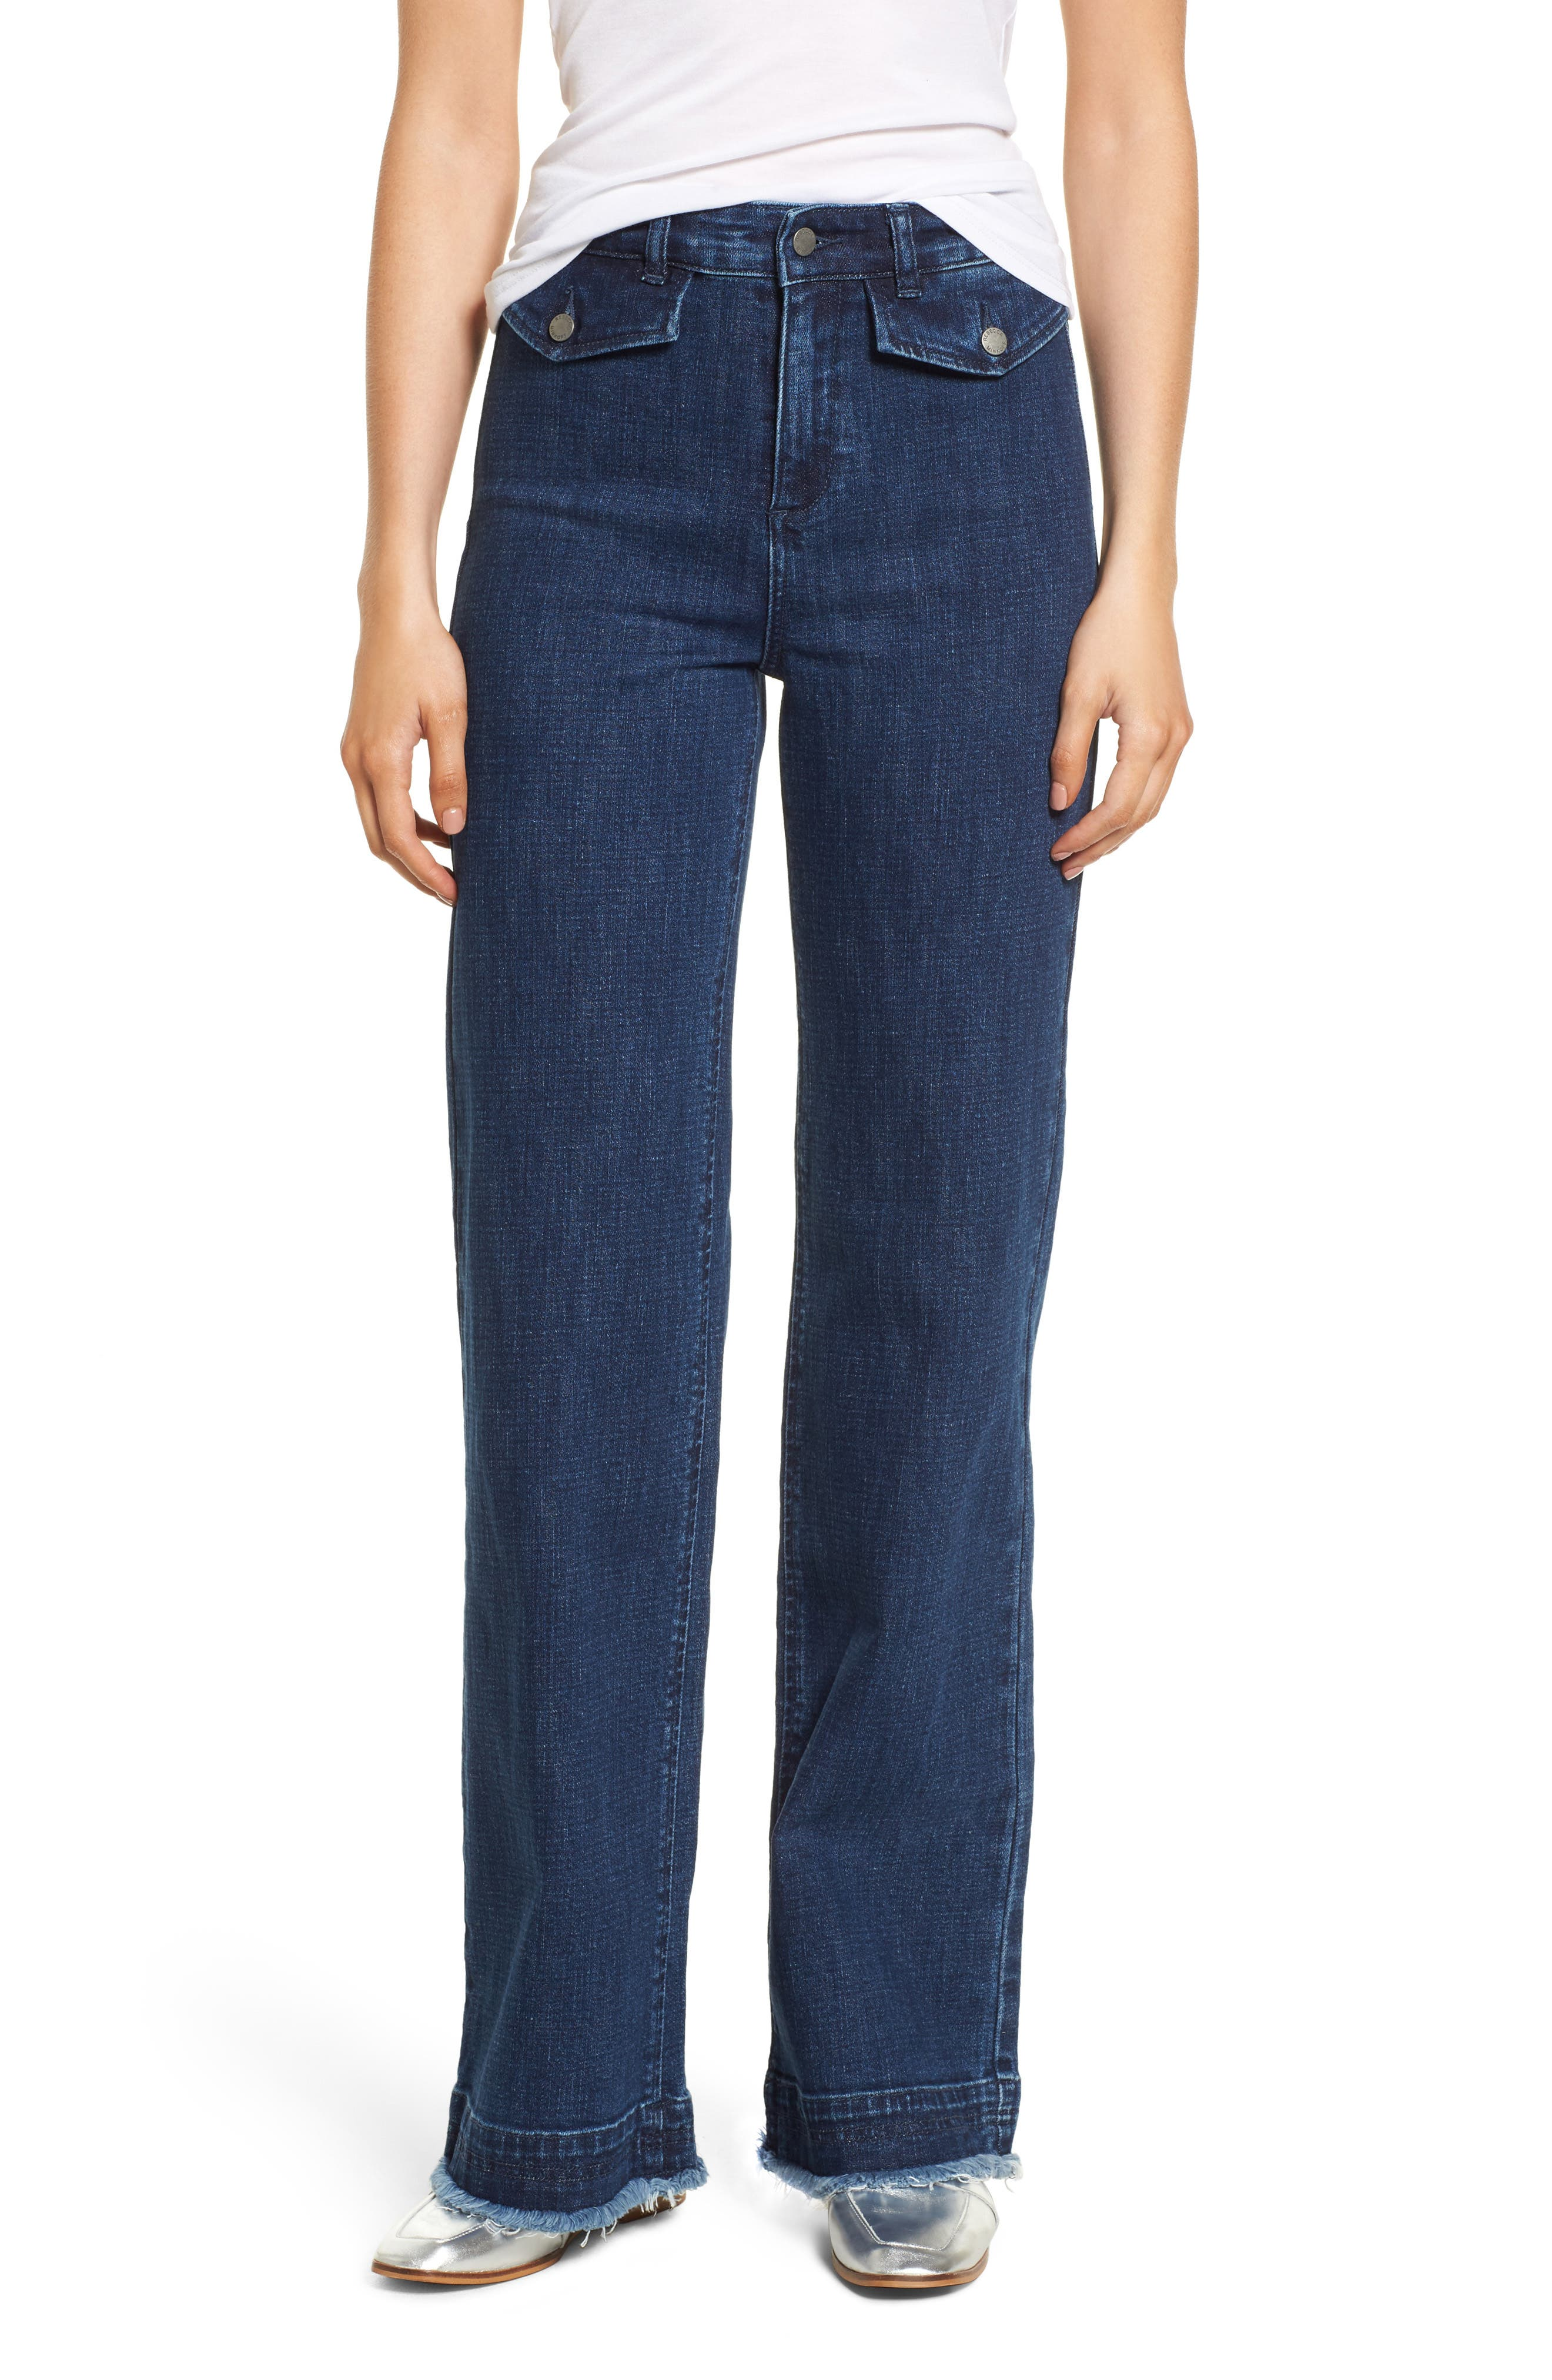 Elwood Wide Leg Jeans,                         Main,                         color, Indigo